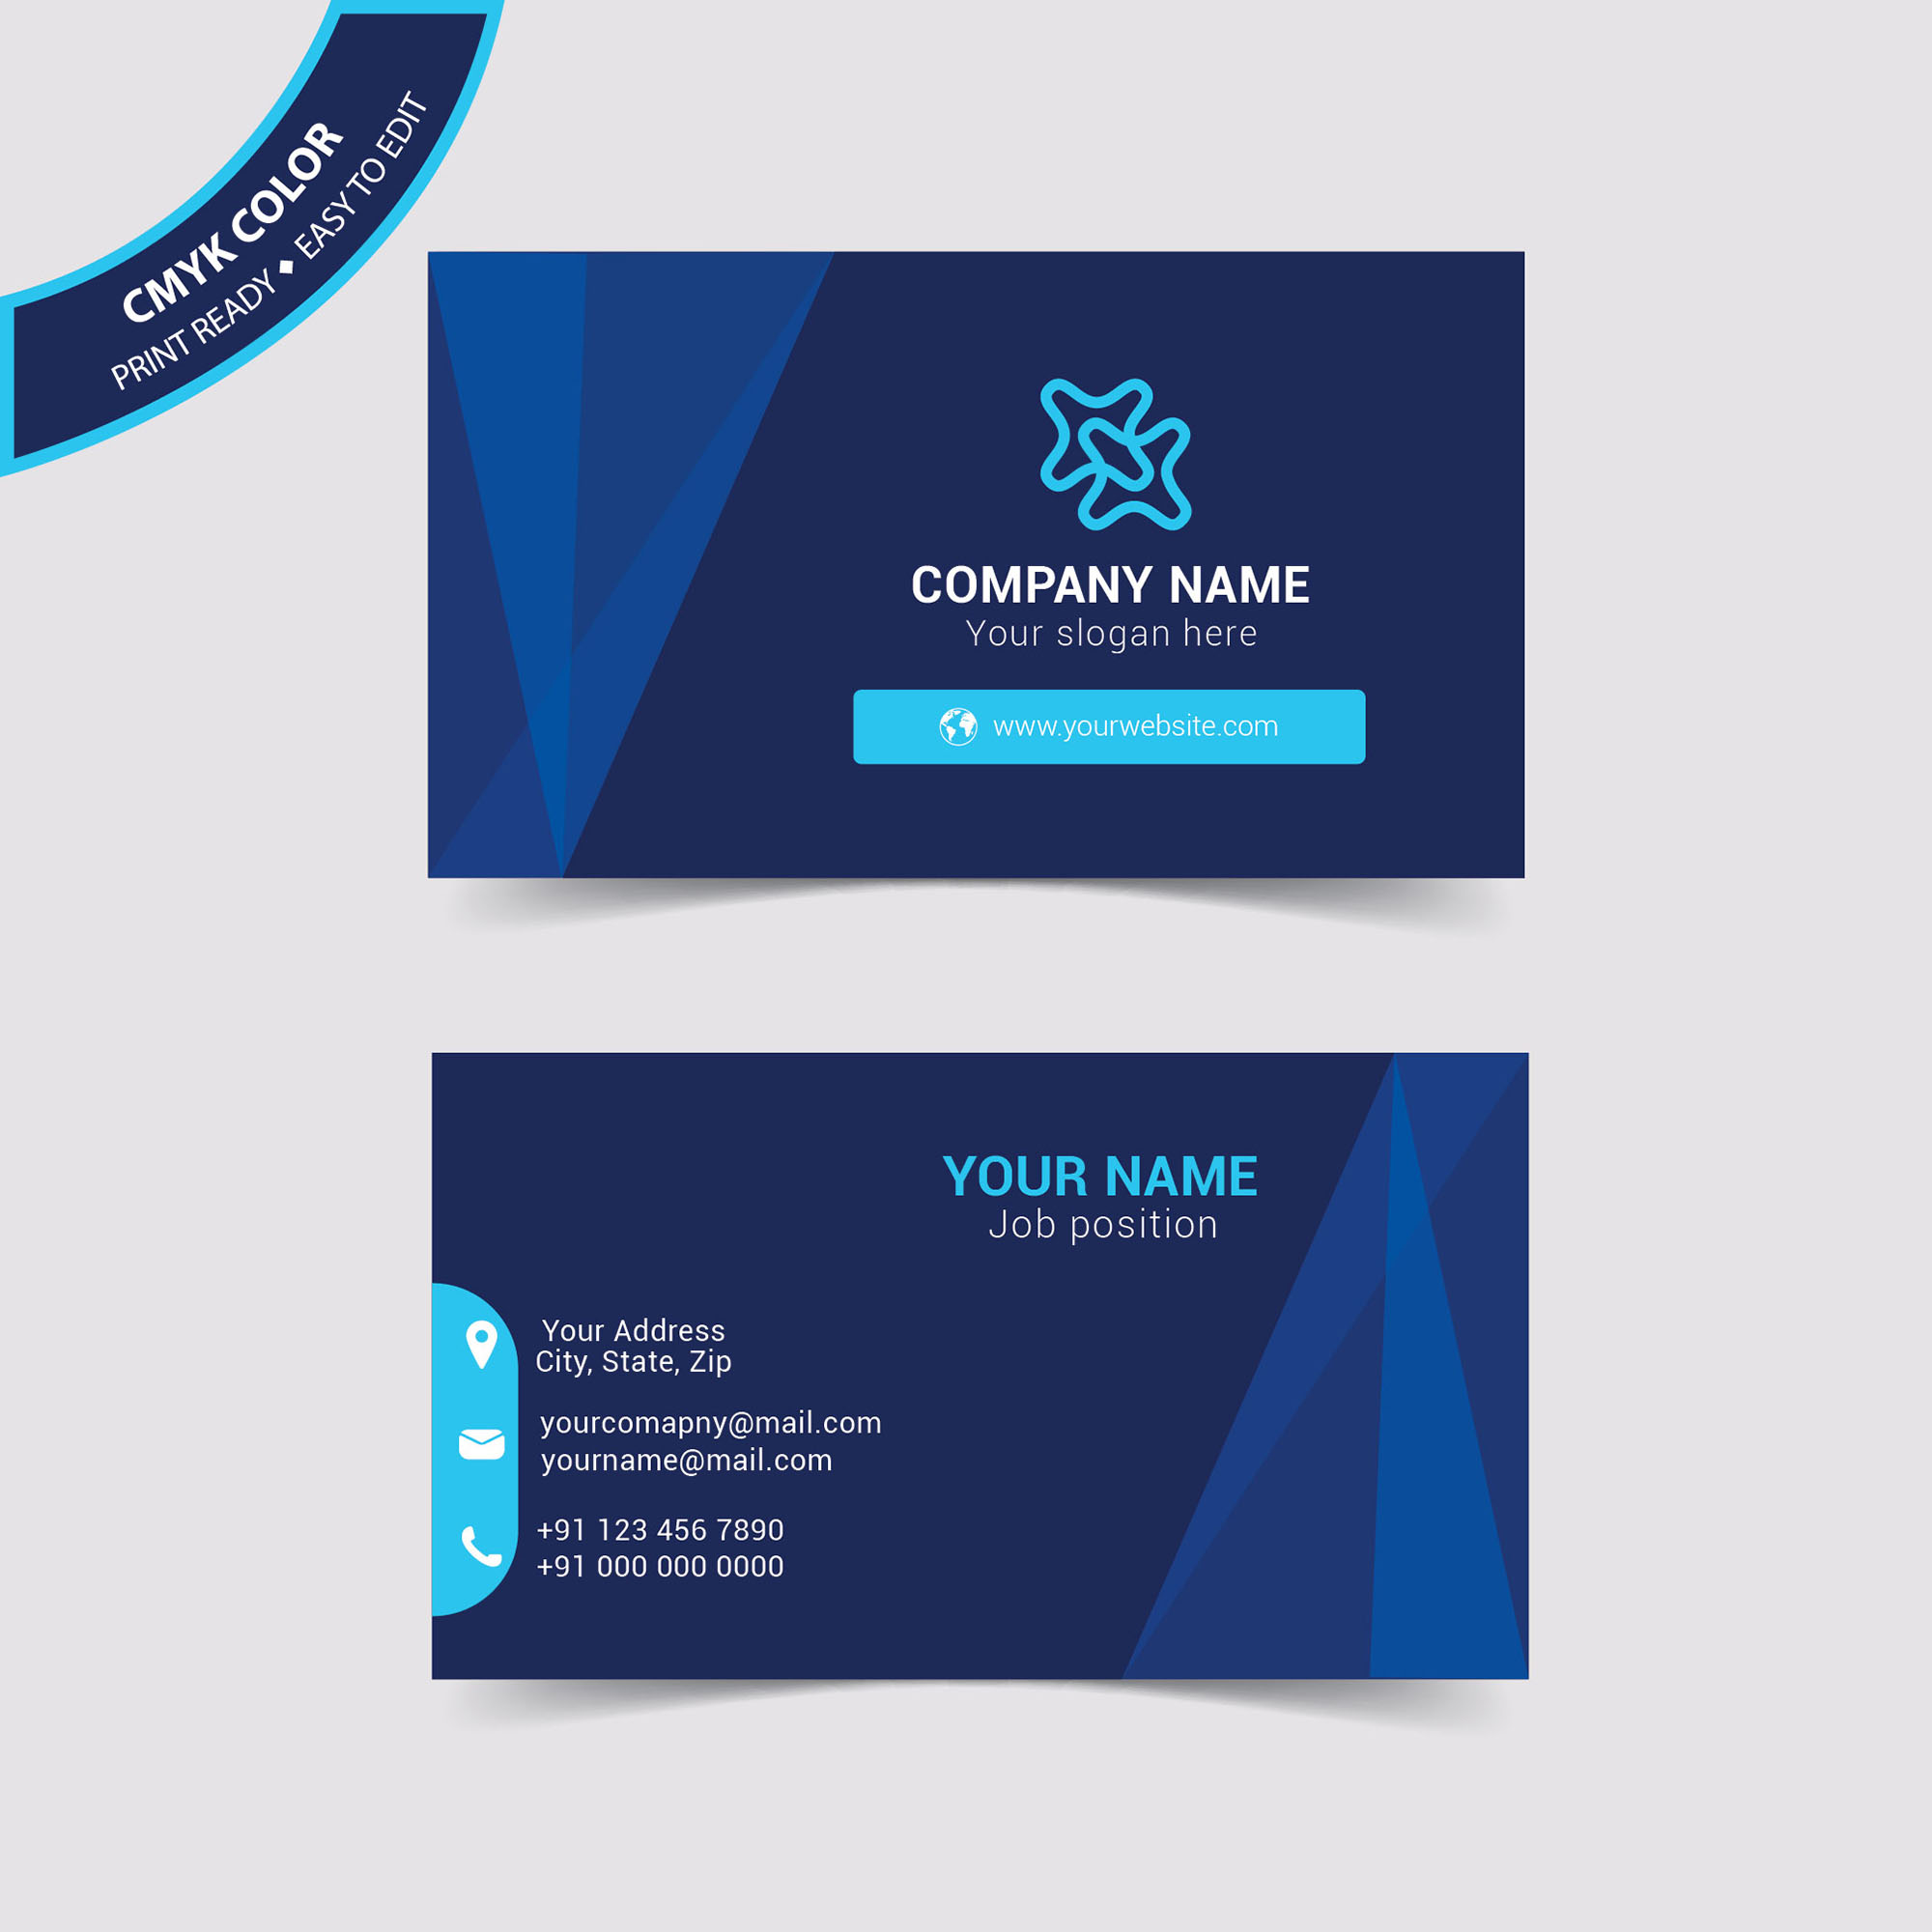 Blue creative business card design free download wisxi business card business cards business card design business card template design templates friedricerecipe Choice Image